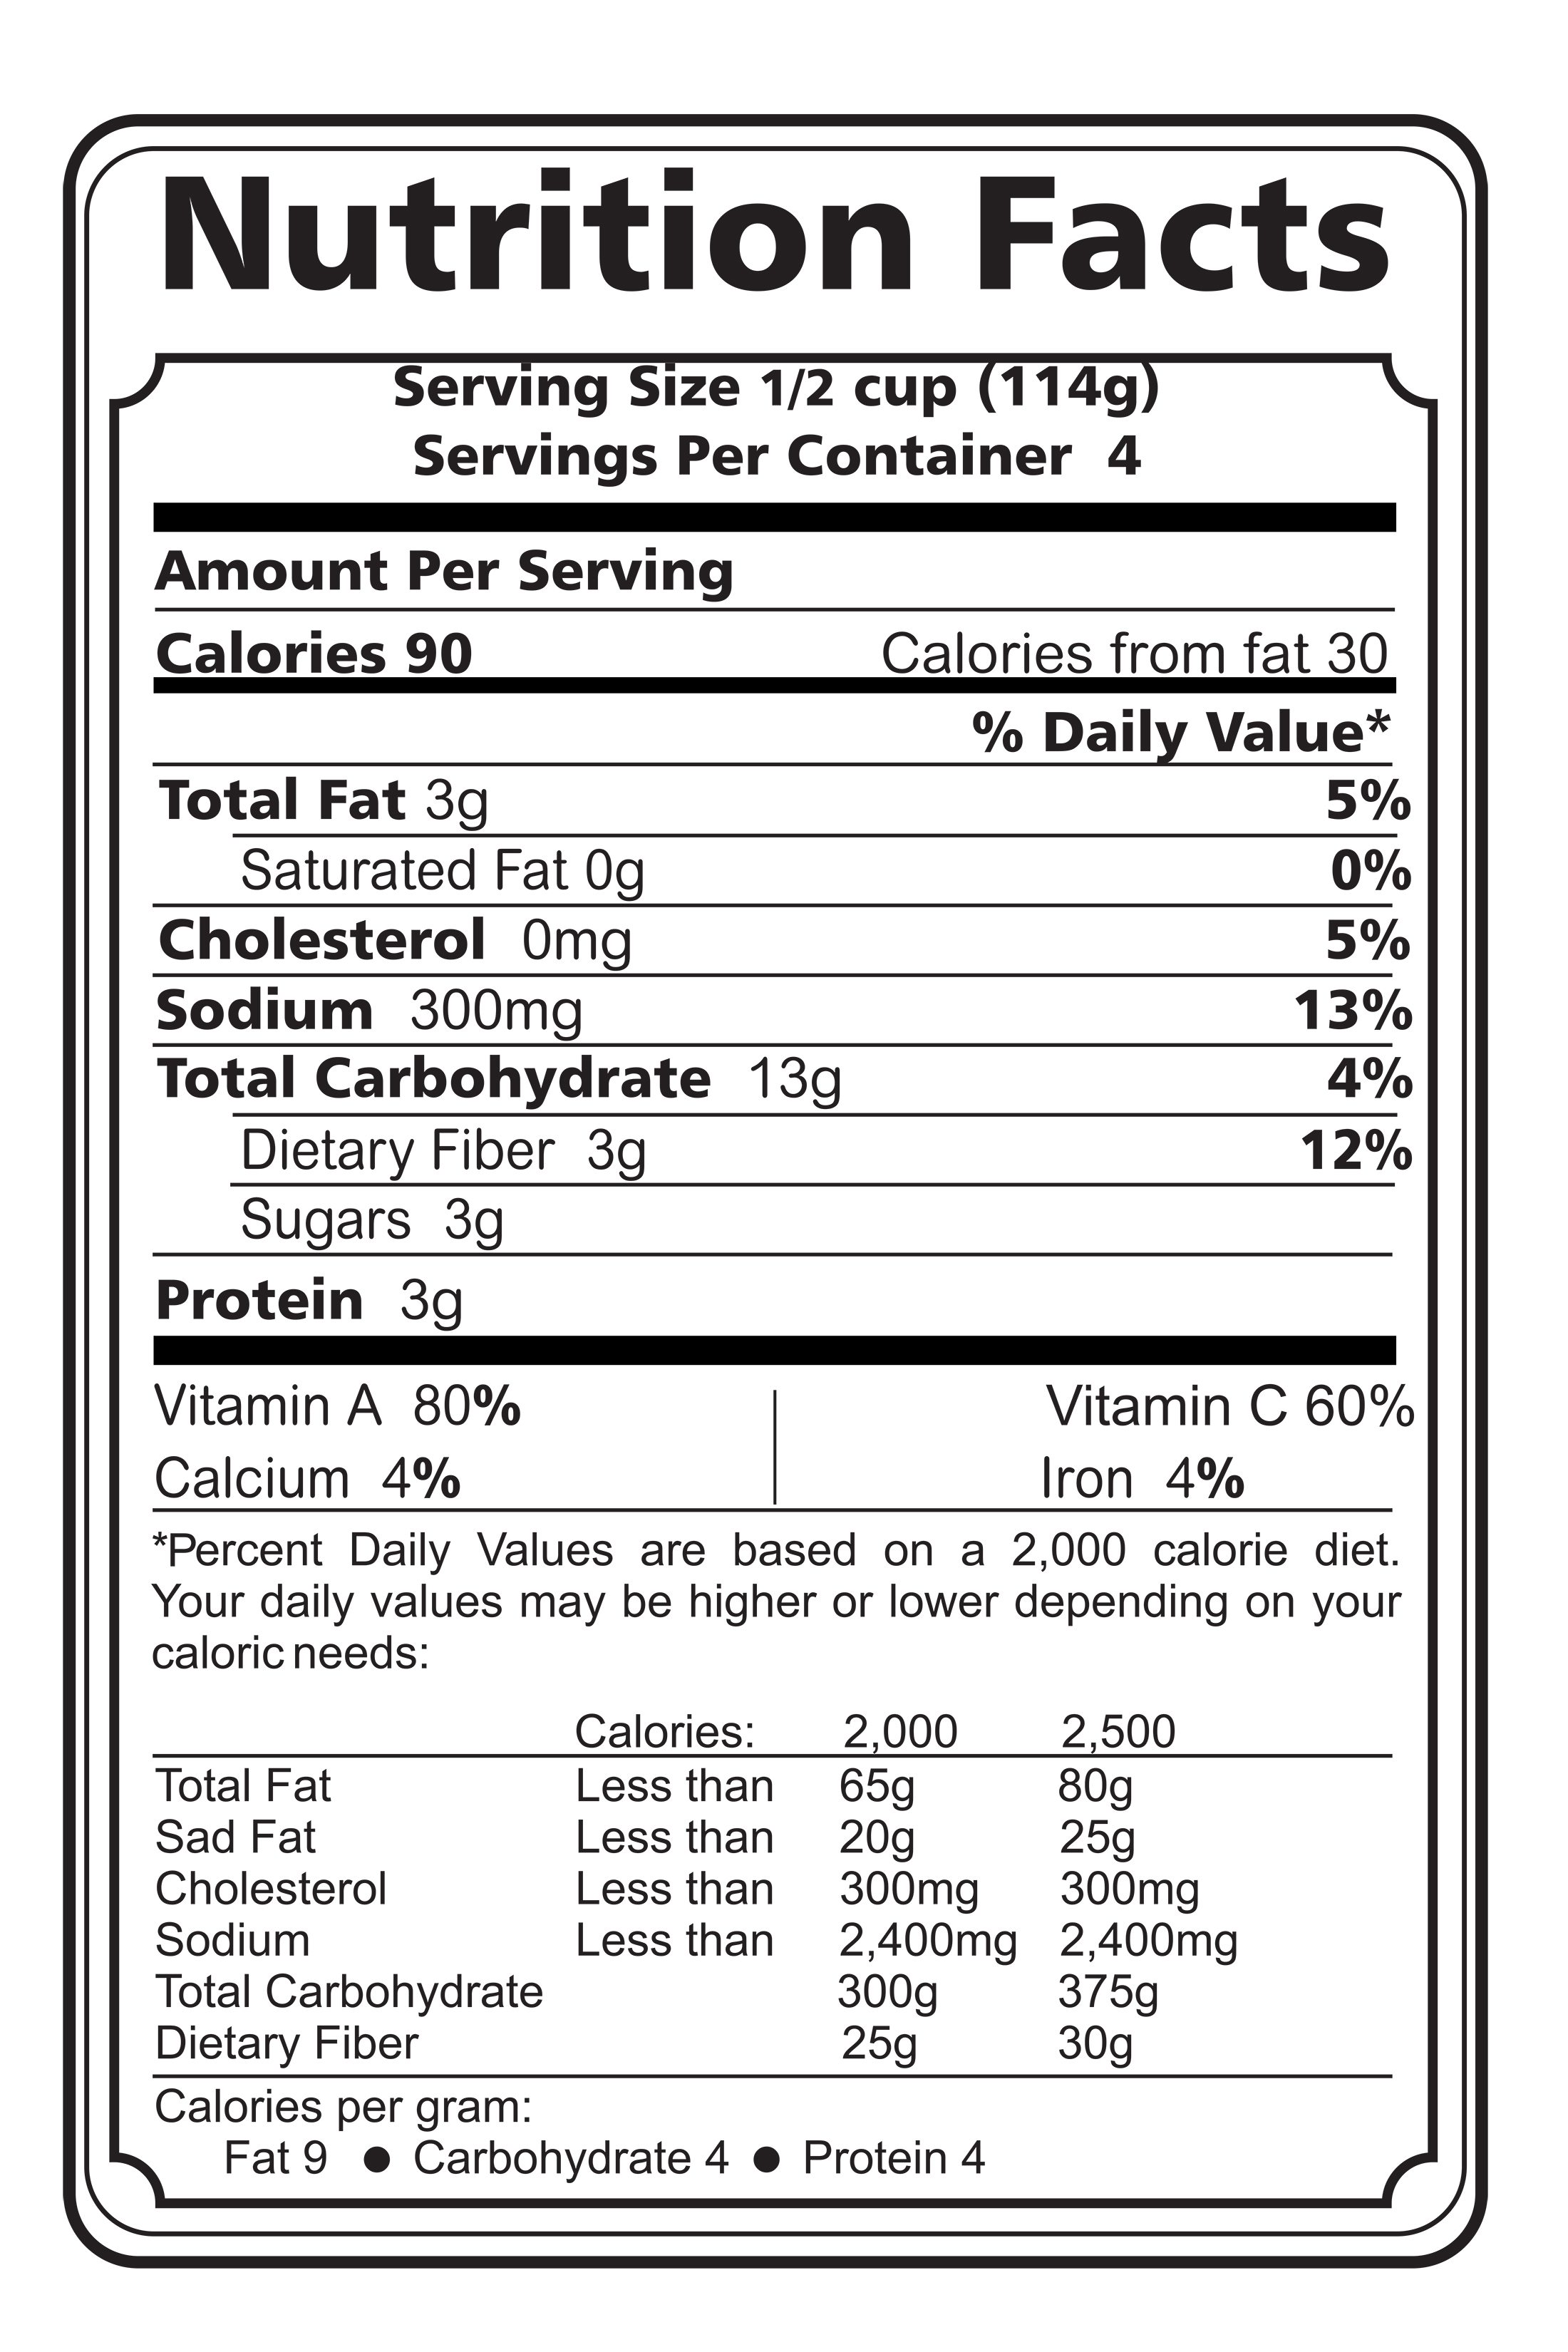 Free Worksheet Calorie Worksheet food label tips nutrition that you can download and print 8 5